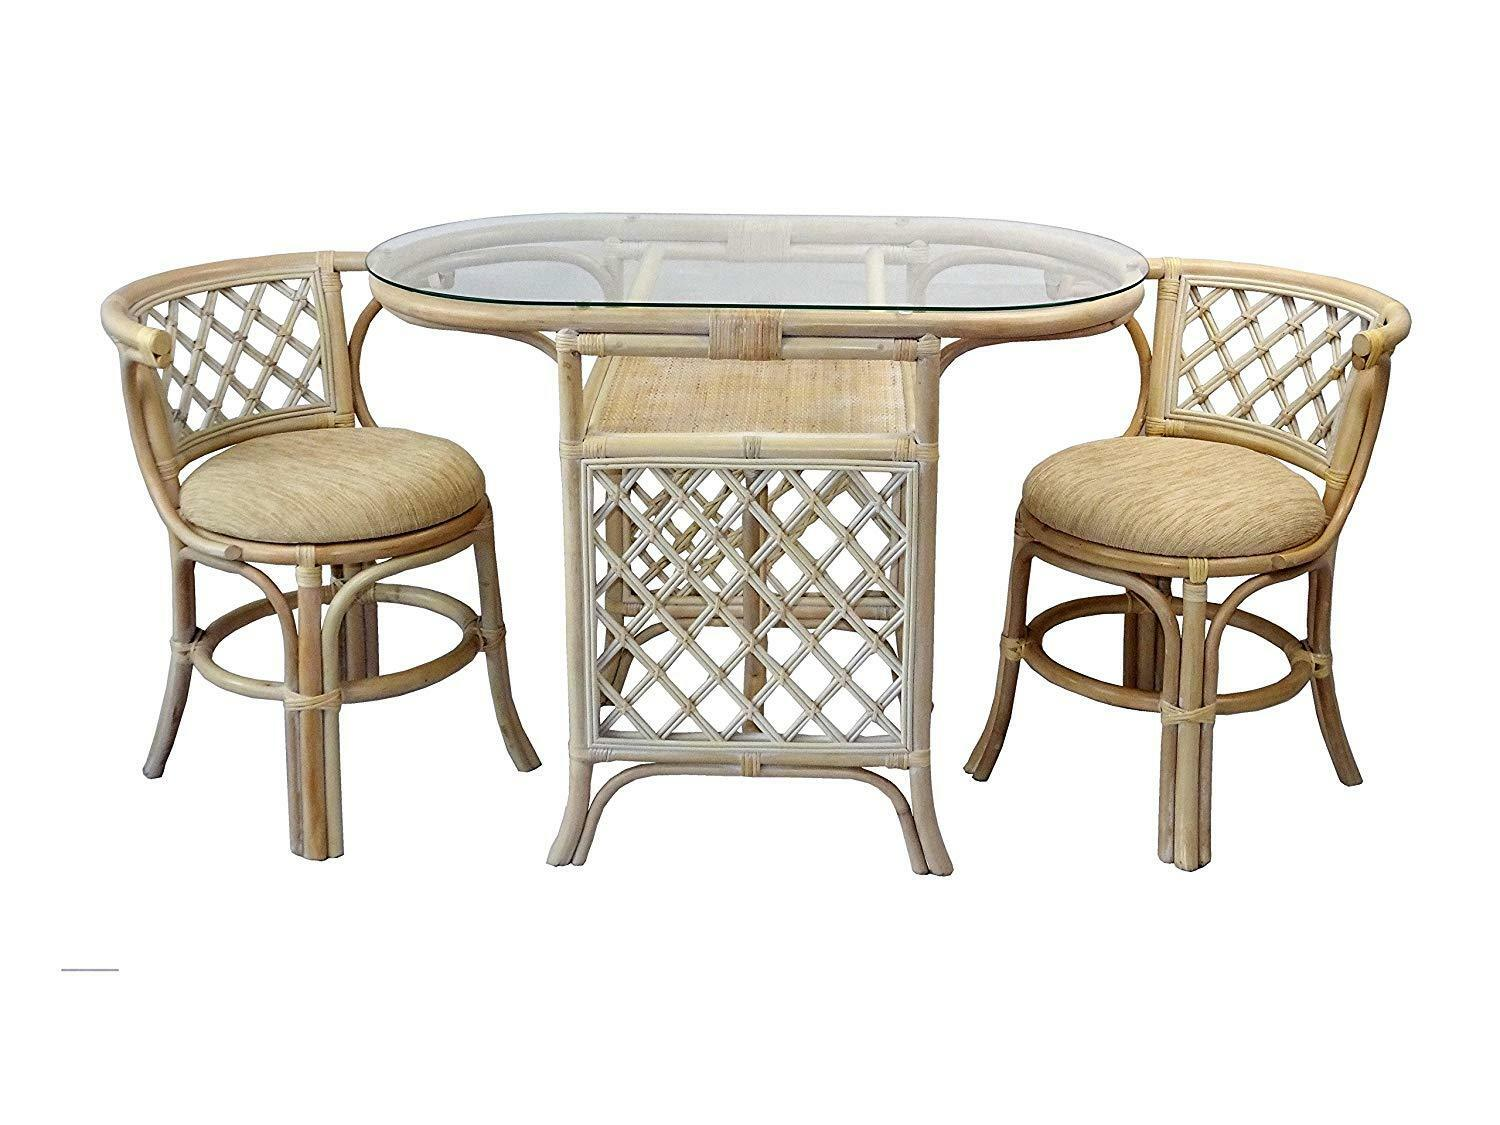 Borneo Compact Dining Set Table With Glass Top 2 Chairs Colonial Handmade For Sale Online Ebay